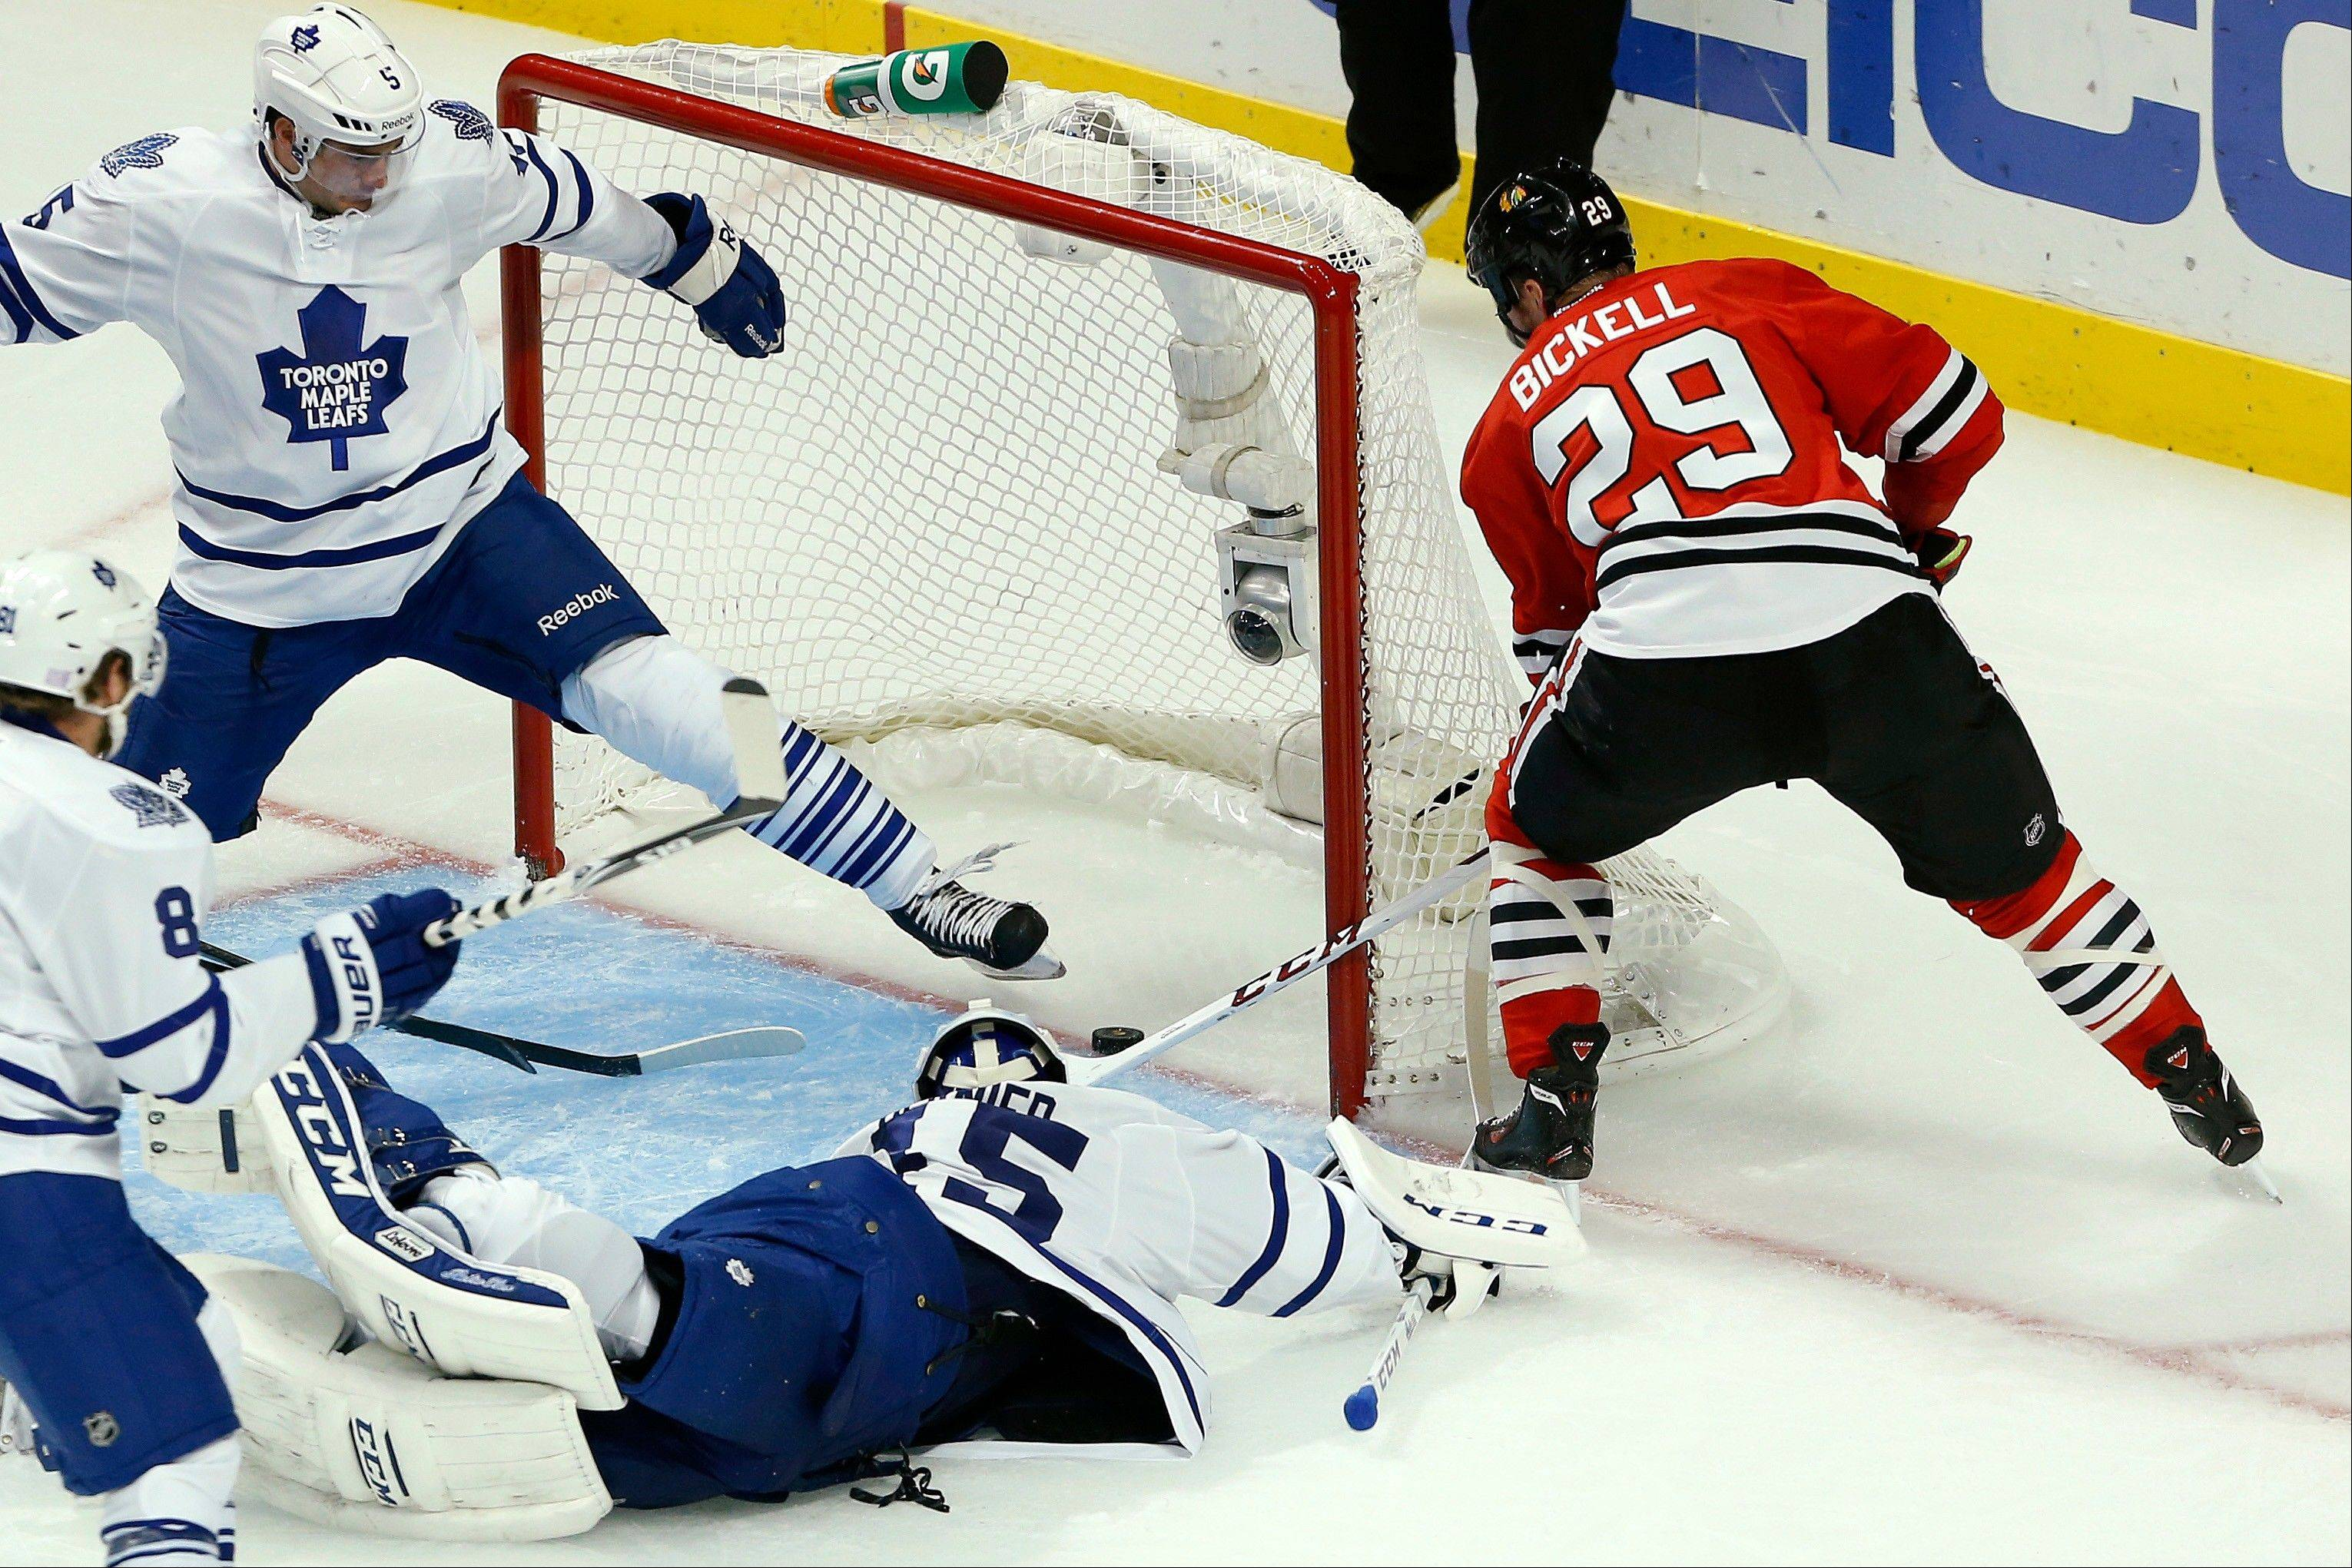 Blackhawks left wing Bryan Bickell (29) scores a goal past Toronto Maple Leafs goalie Jonathan Bernier (45) and defenseman Paul Ranger, top left, during the second period.